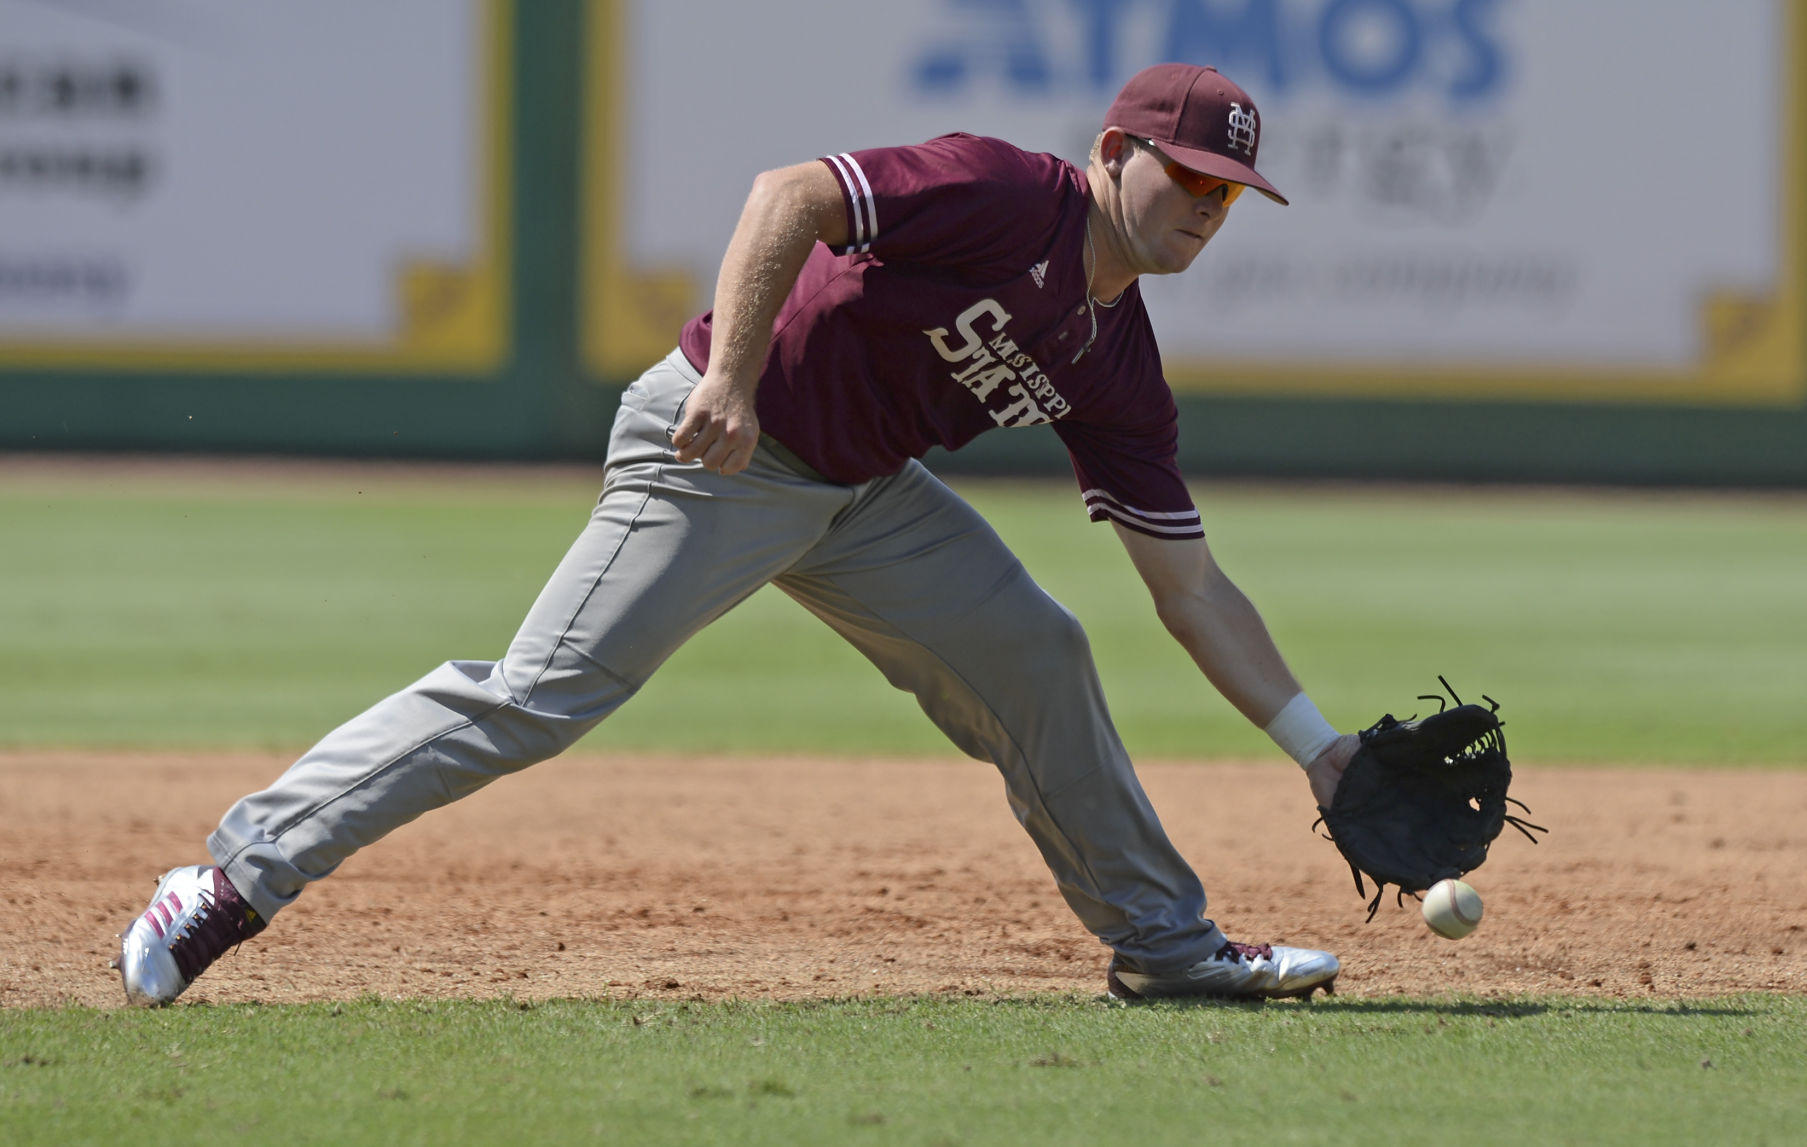 Davidson infielders collide on pop fly to give Texas A&M 2 runs